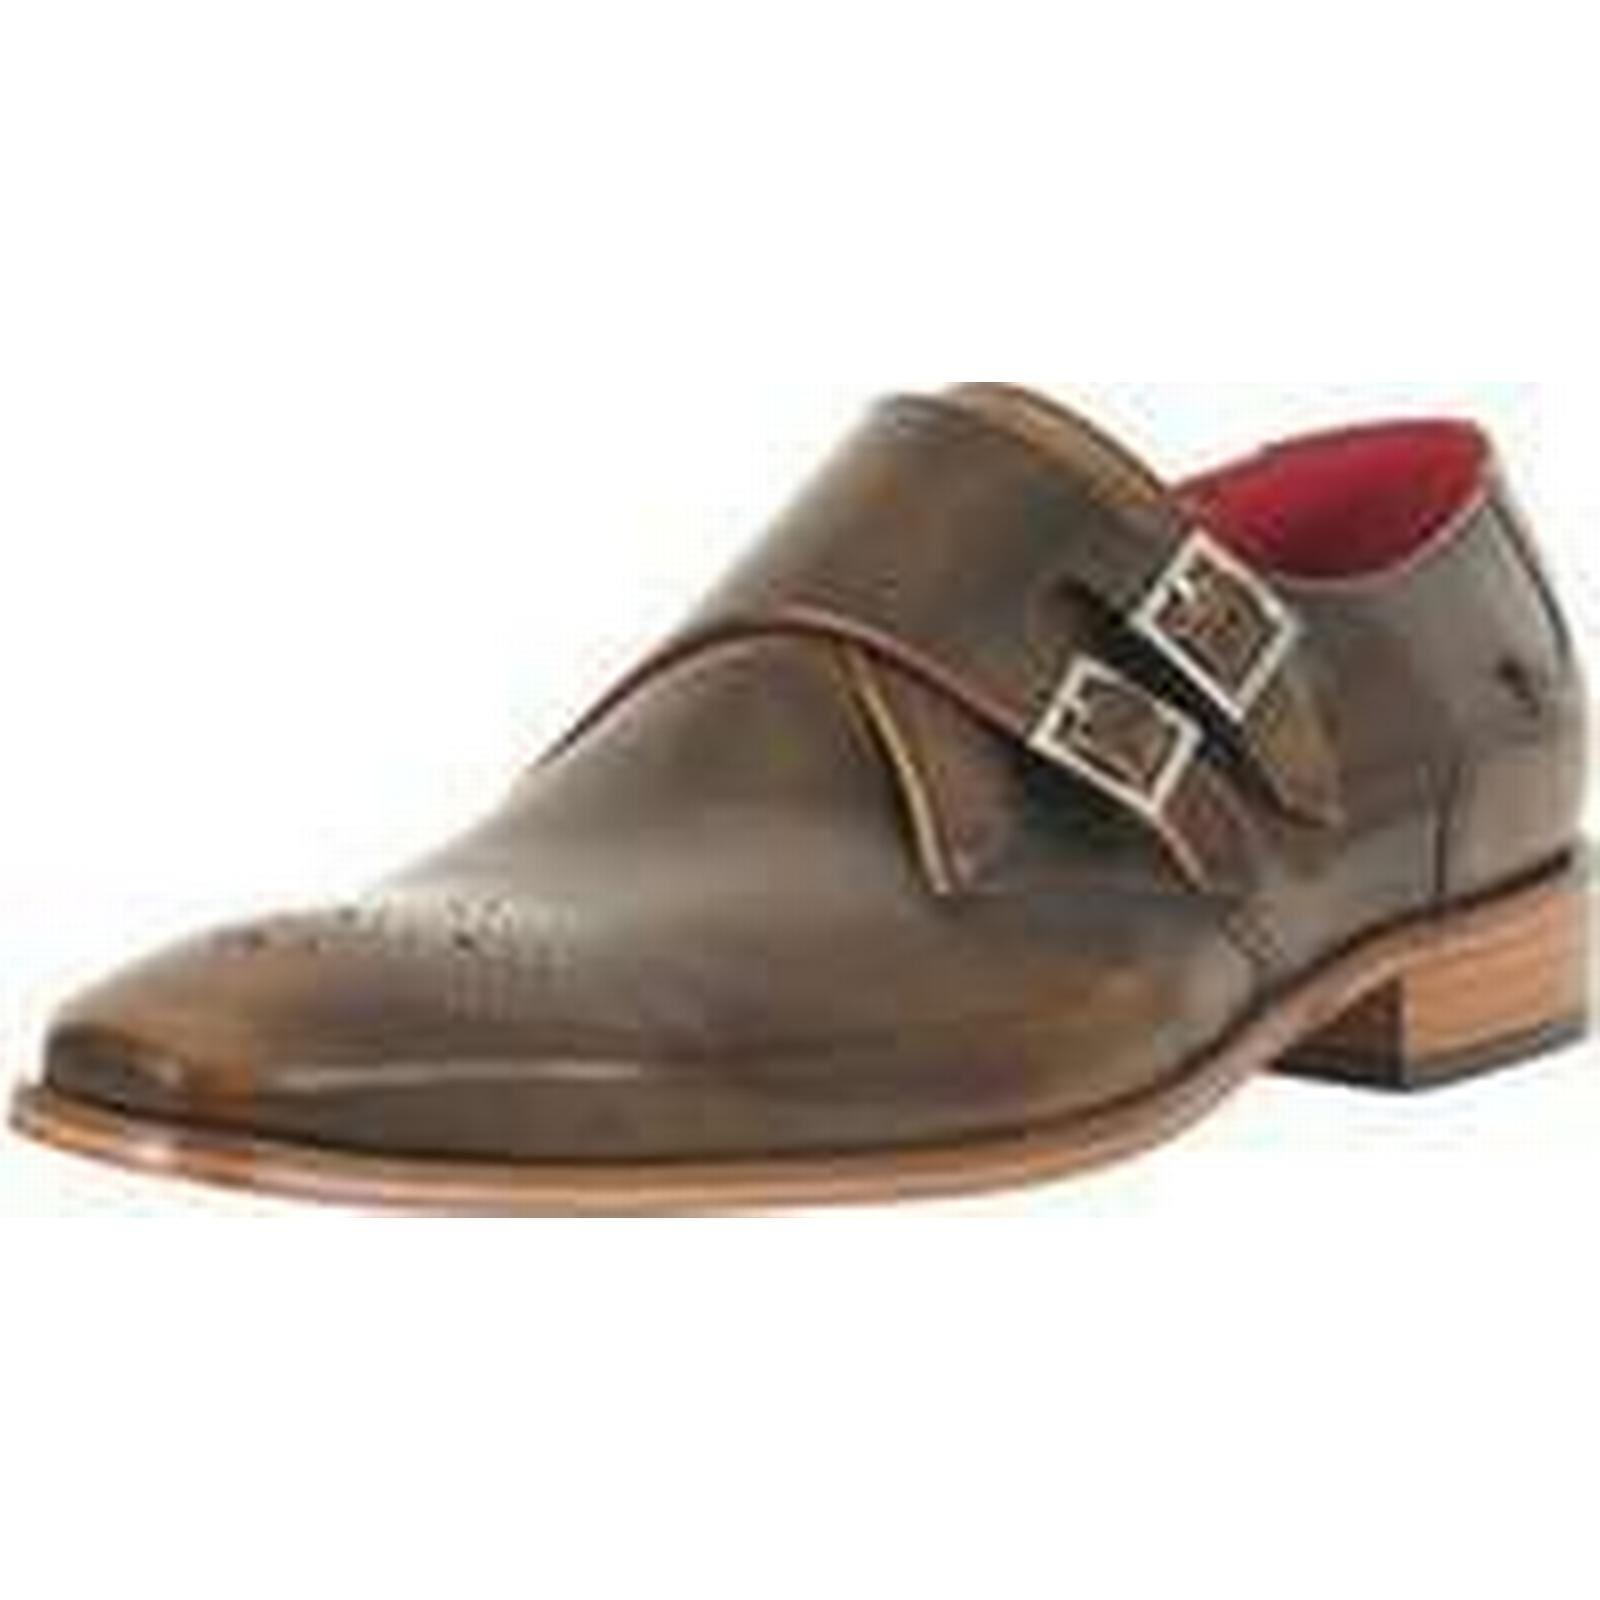 Spartoo.co.uk men's Jeffery-West Men's Scarface Polished Leather Shoes, Brown men's Spartoo.co.uk Casual Shoes in Brown db0530